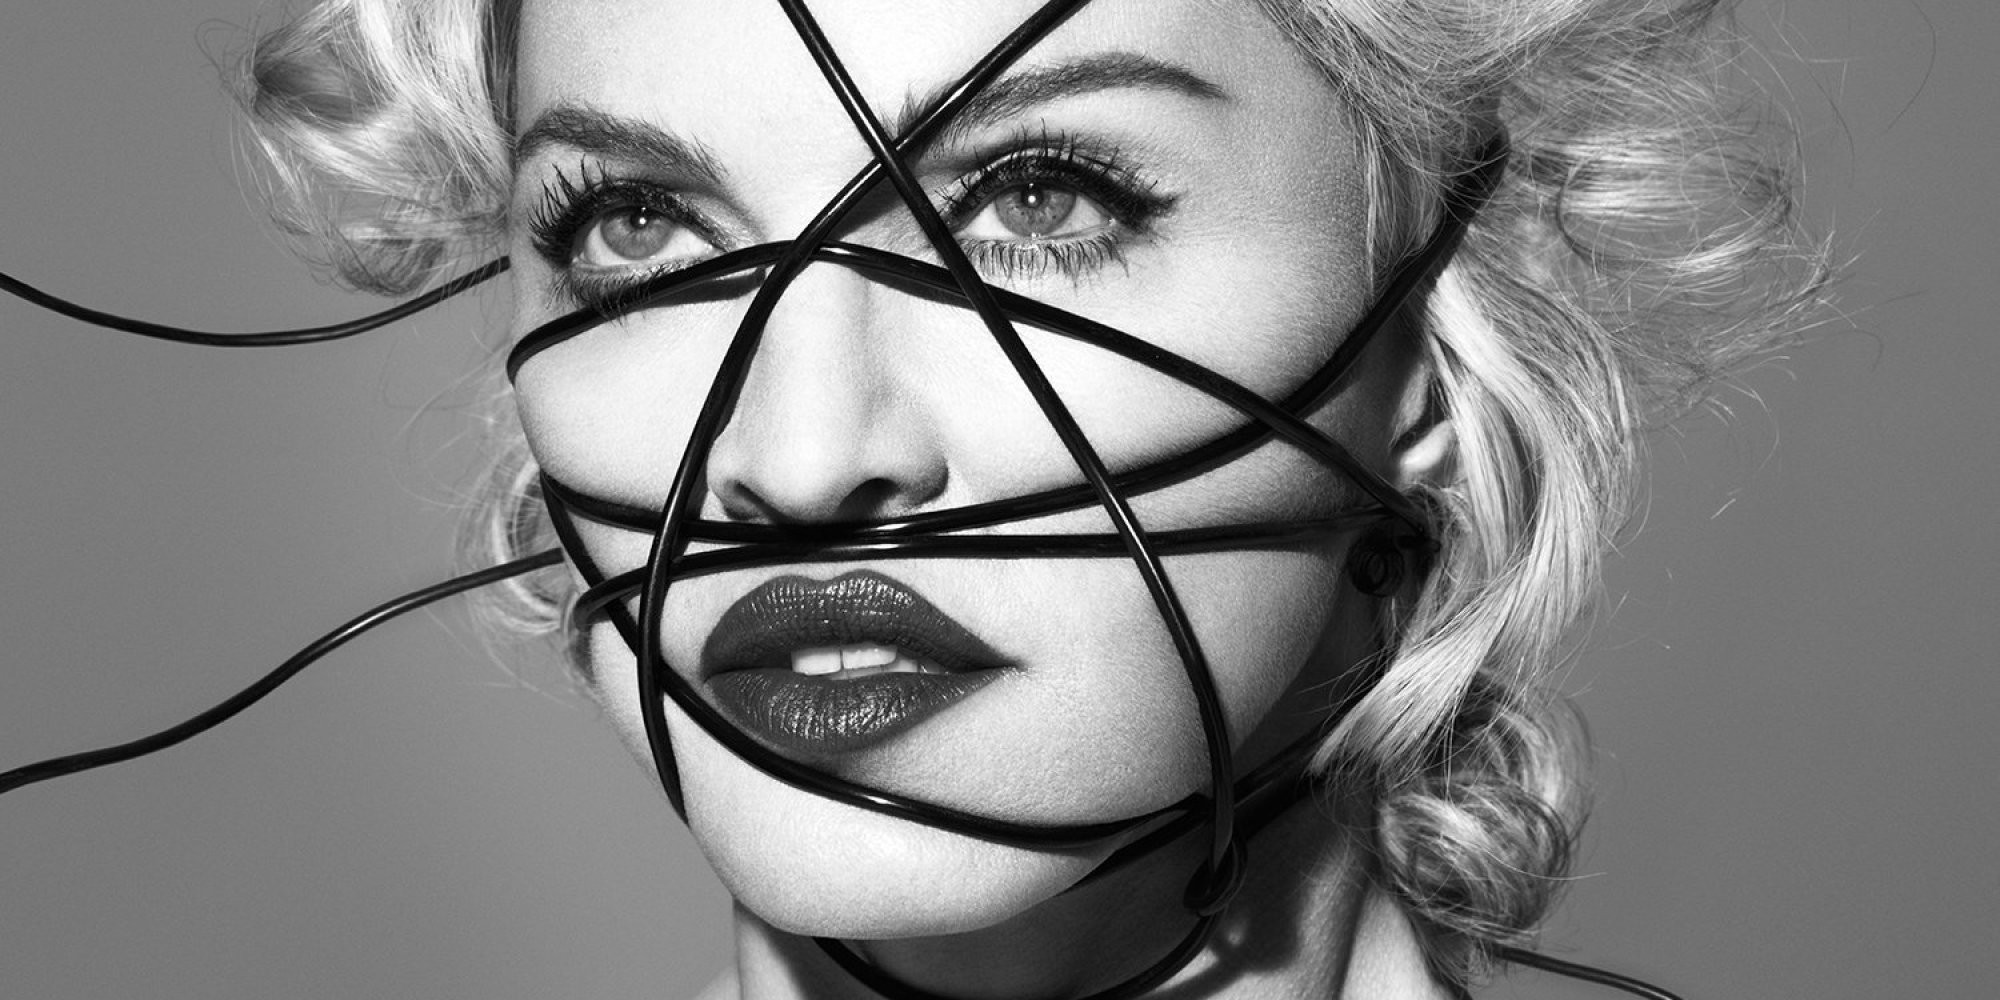 o-madonna-rebel-heart-facebook